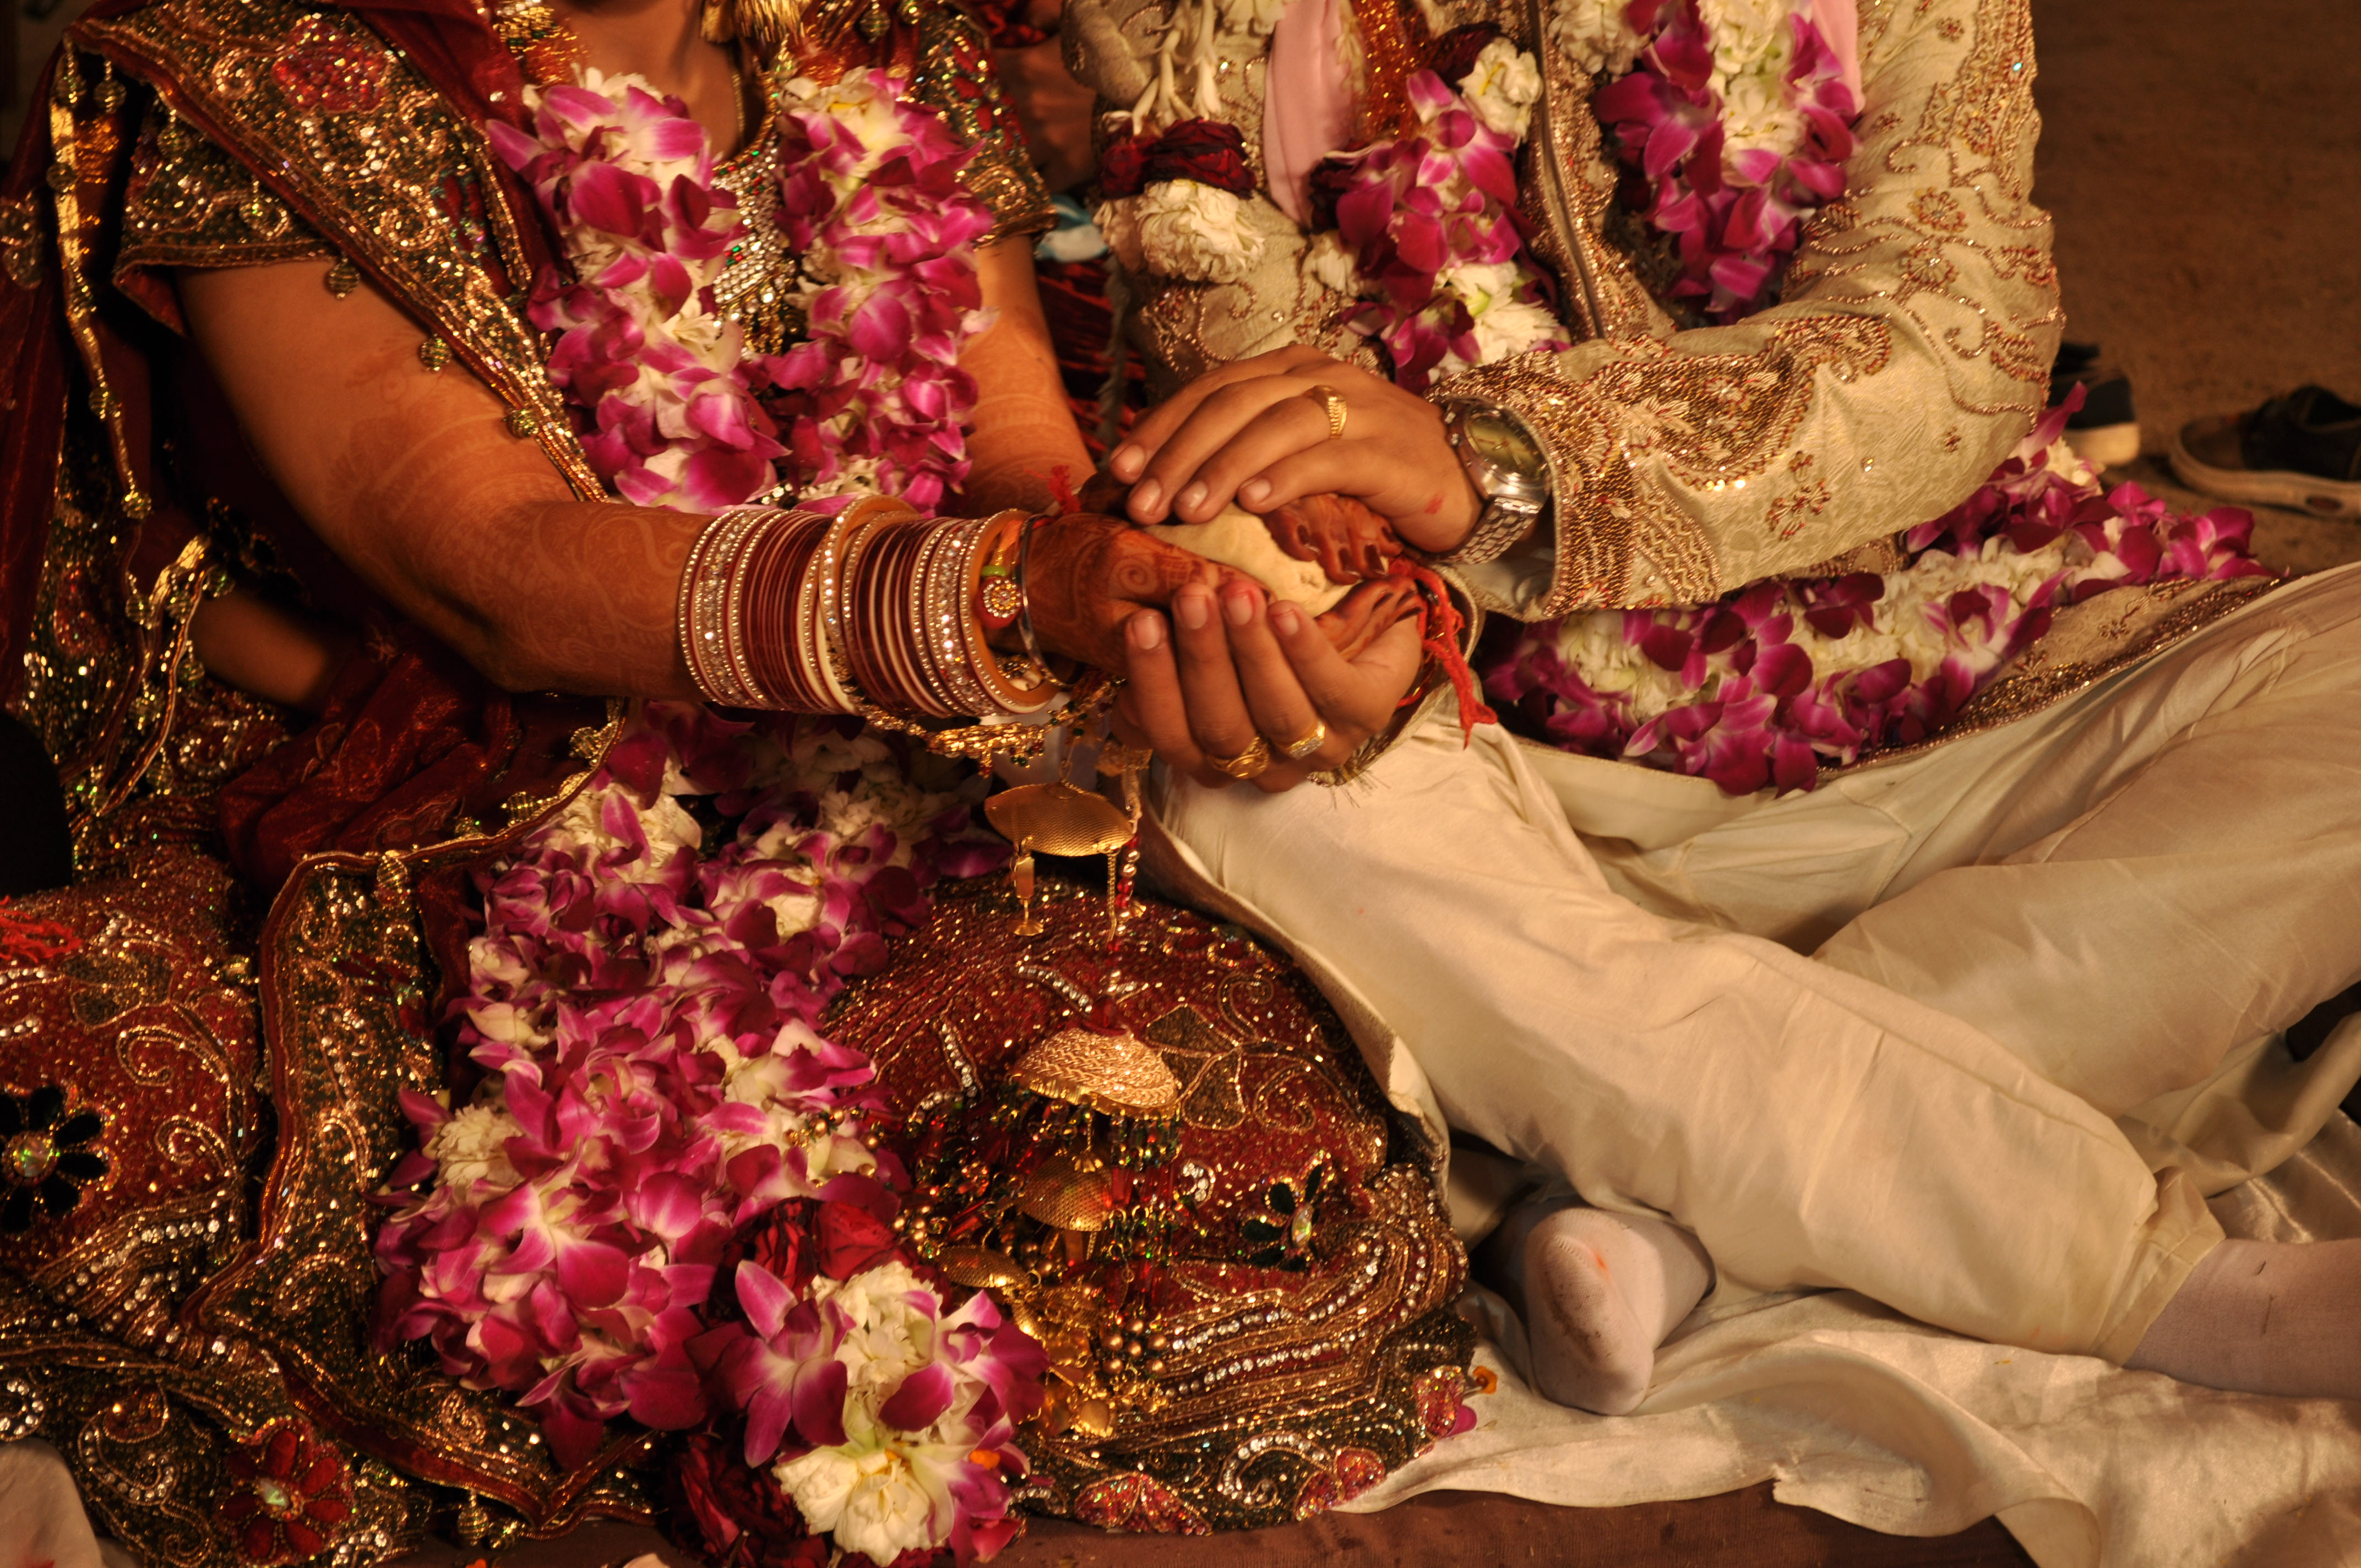 NRIs Can Get Perfect Indian Life Partners Through Hindu Marriage Sites